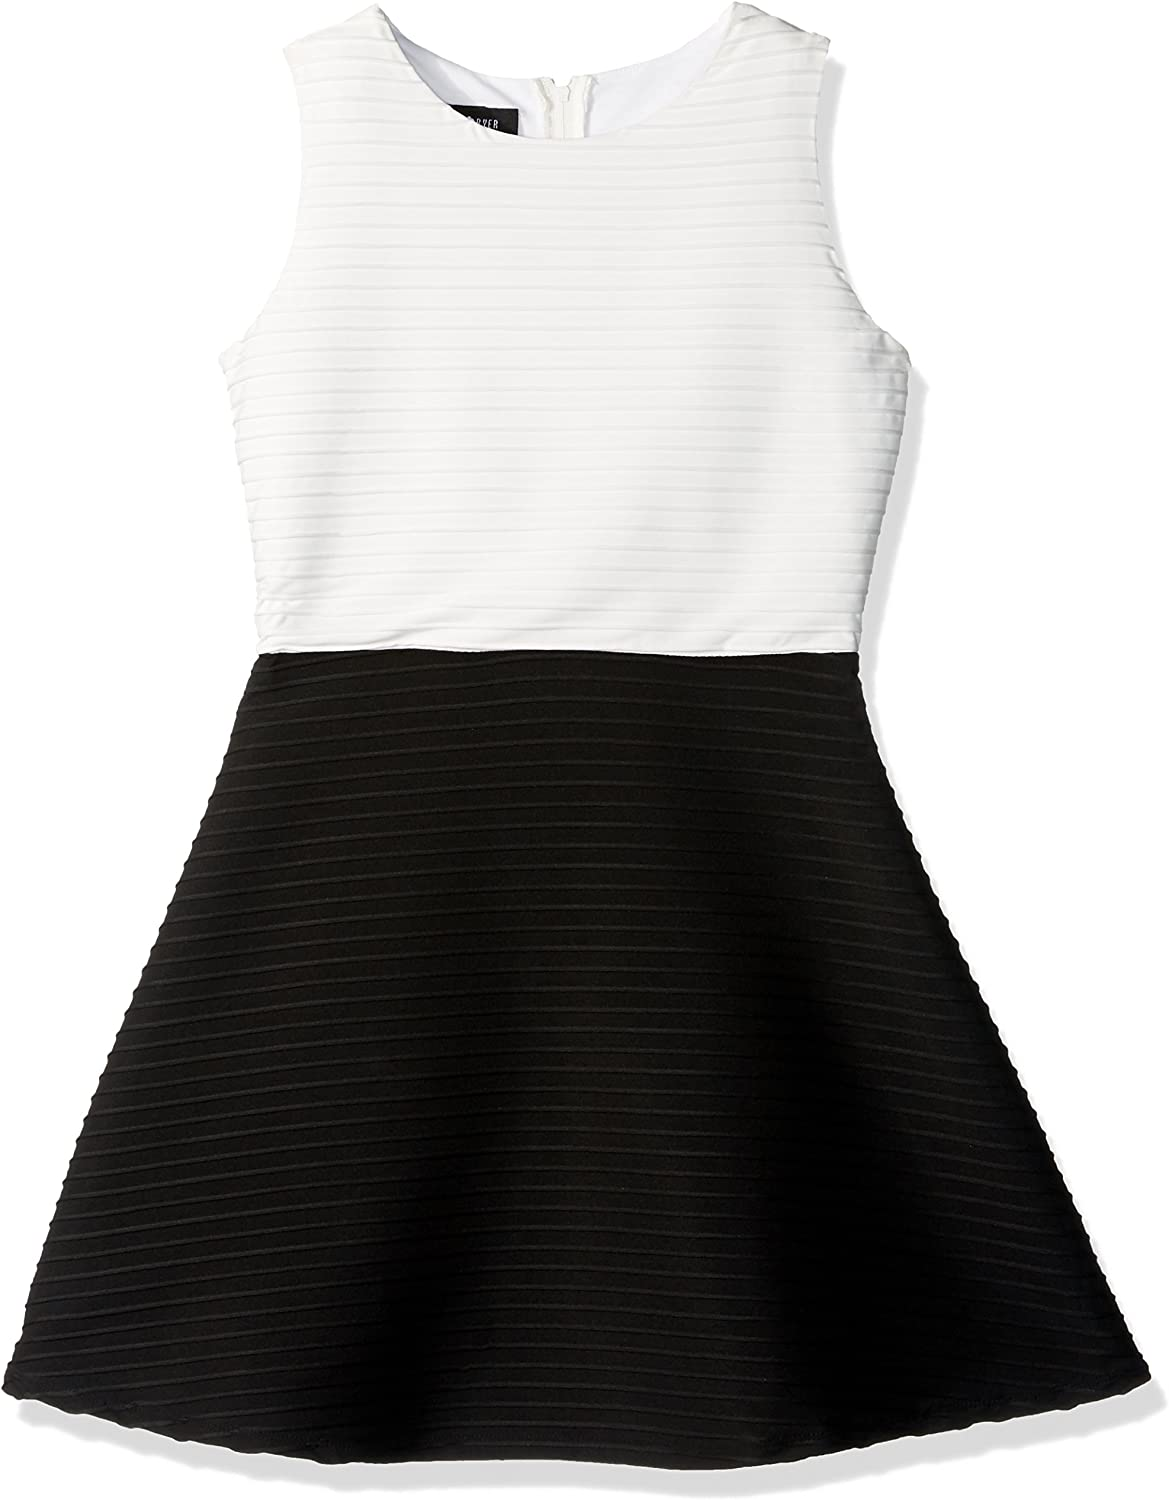 Amy Byer Girls' Big Picture and Flare Textured Knit Dress